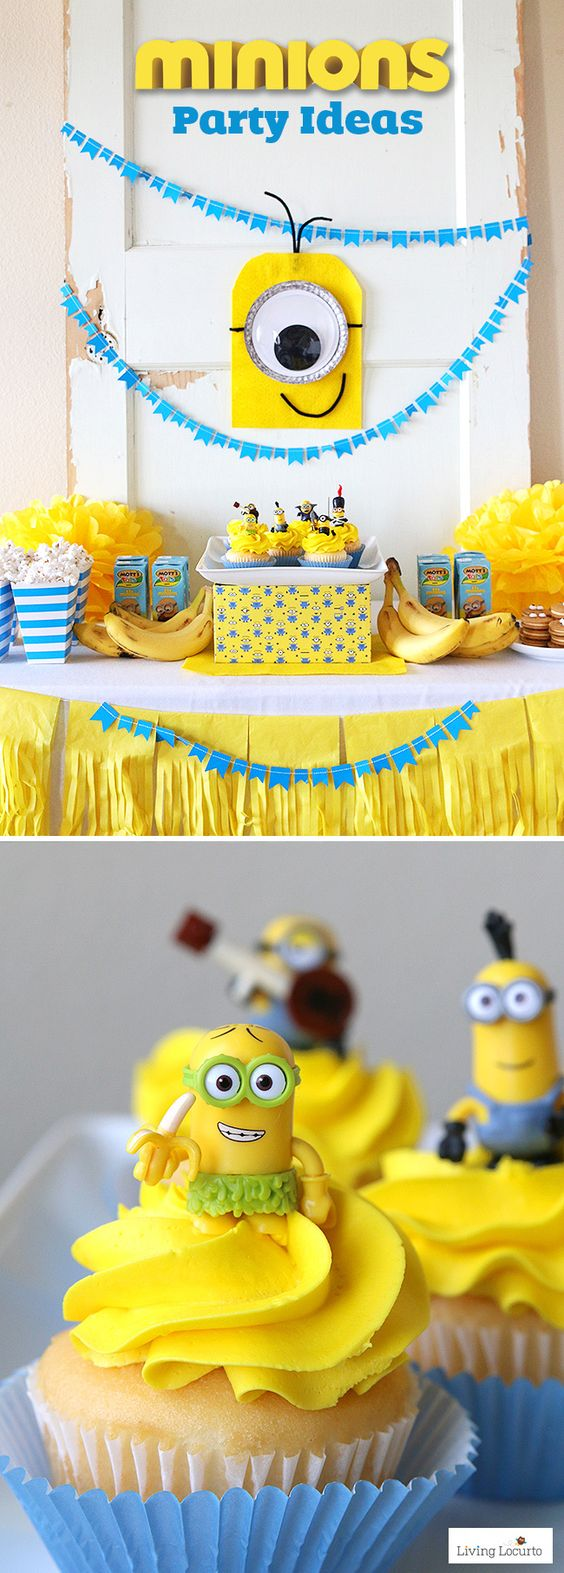 Minions party ideas birthdays easy craft projects and for Craft birthday party places